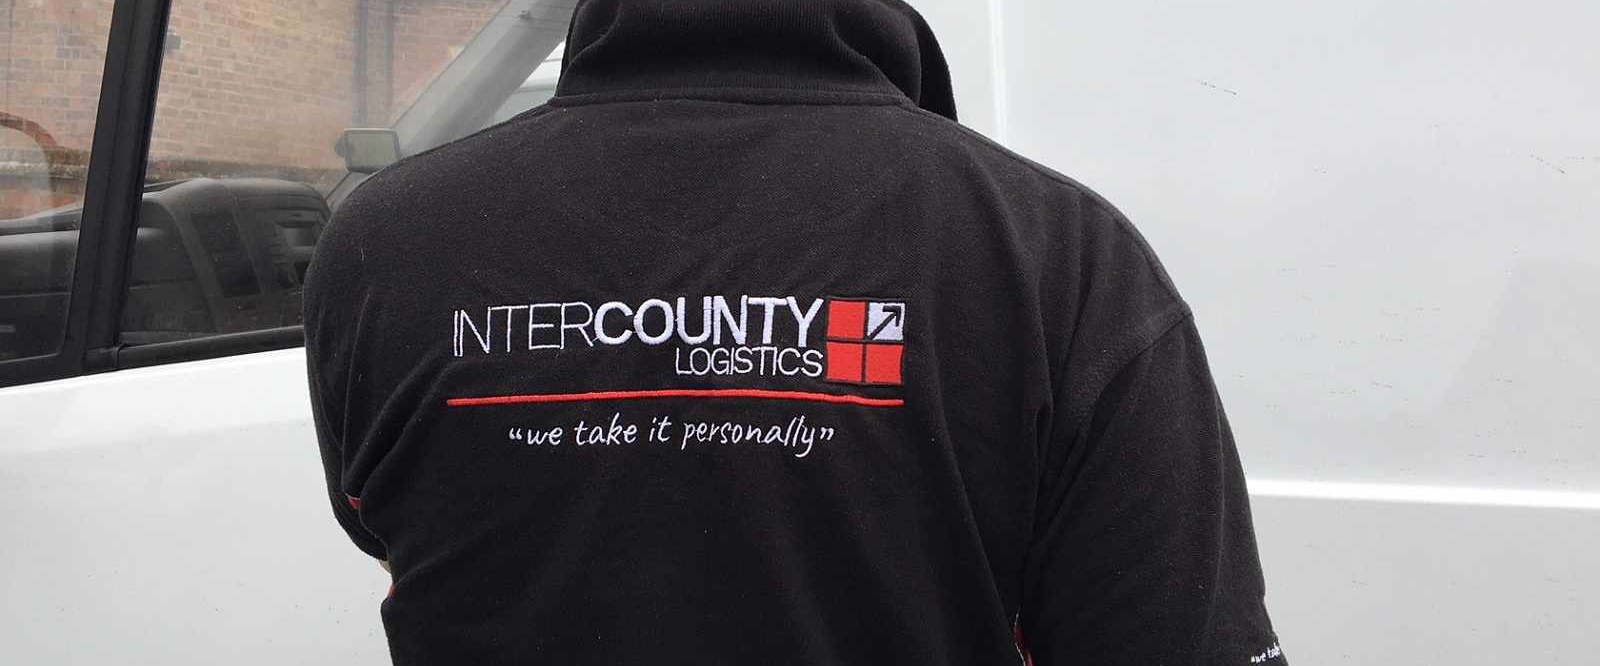 Intercounty Logistics - bespoke and professional same day delivery service